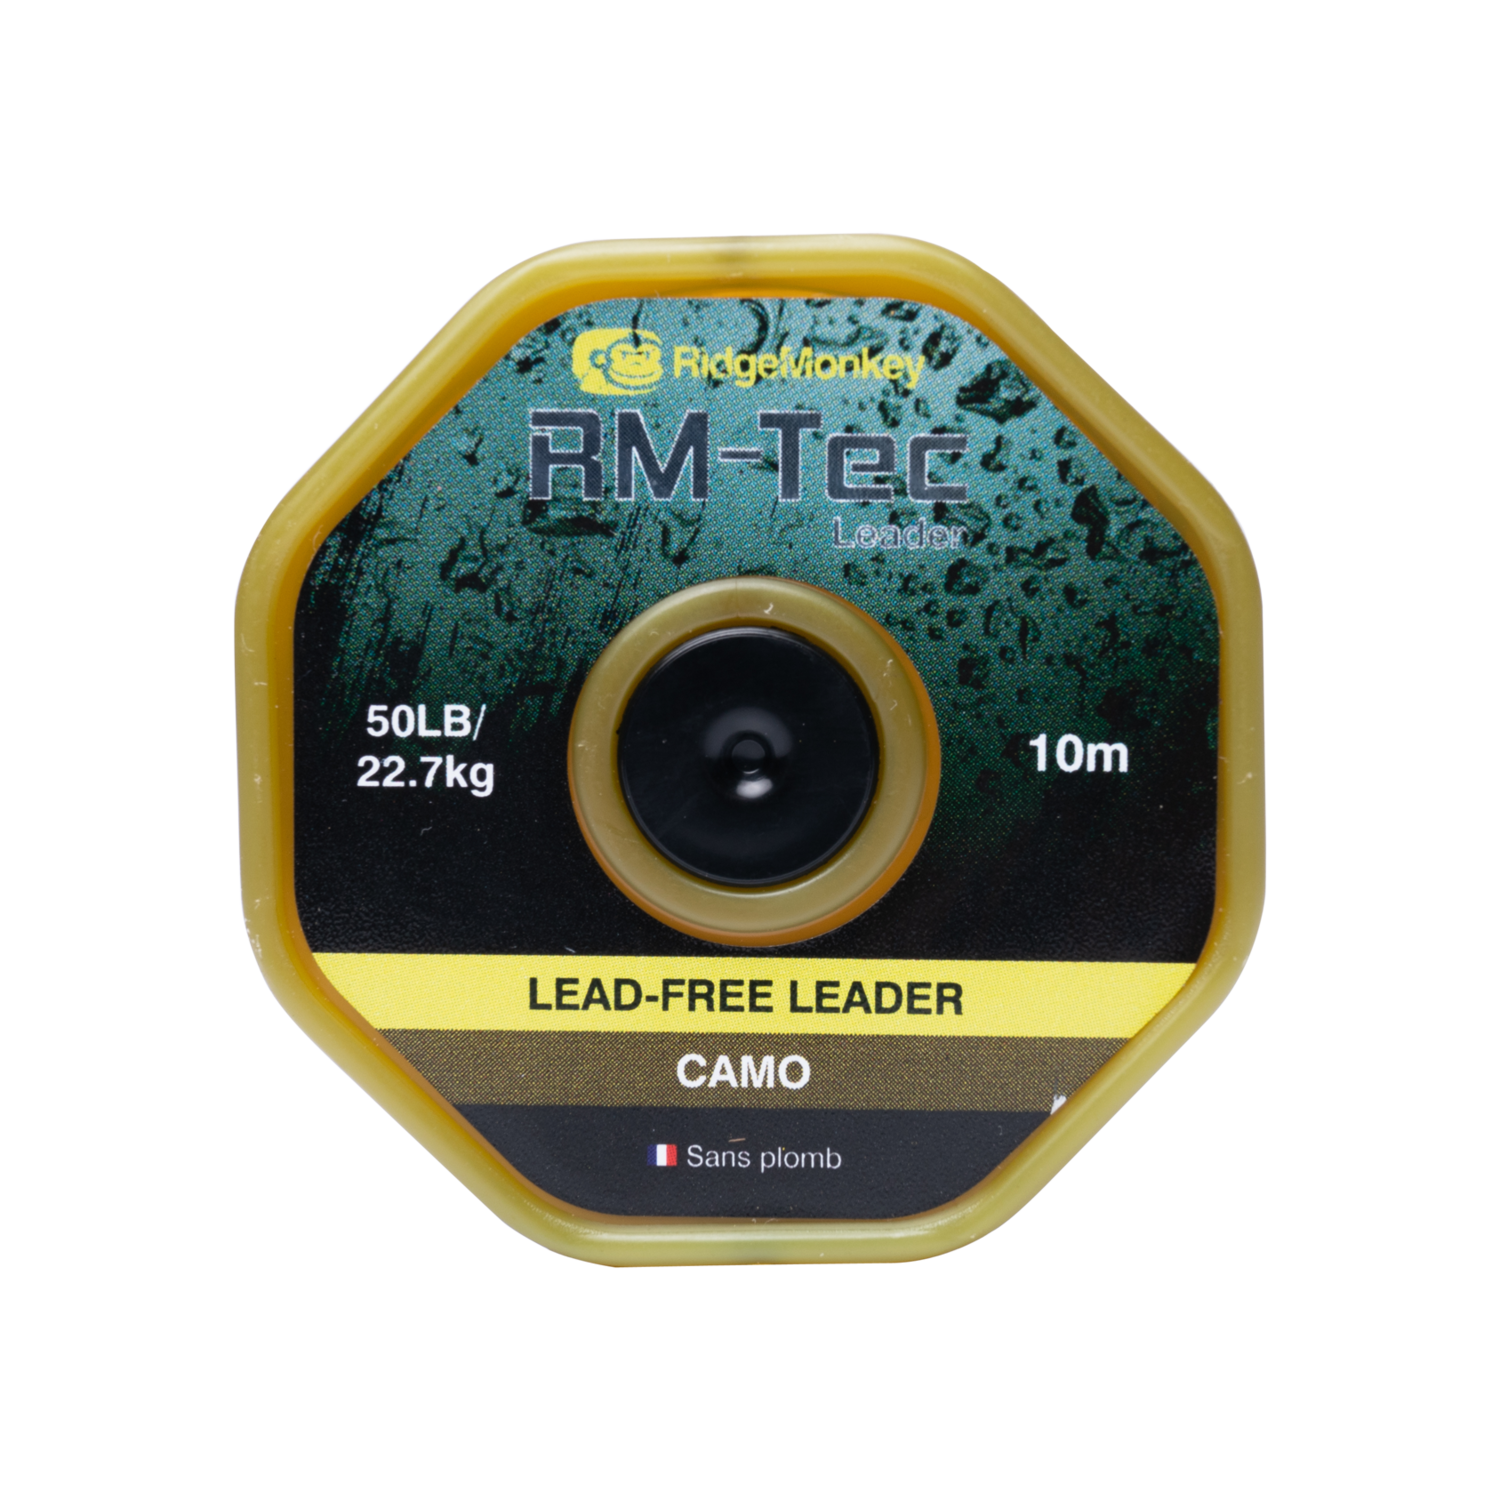 Lead-Free-Leader-Camo-1.png